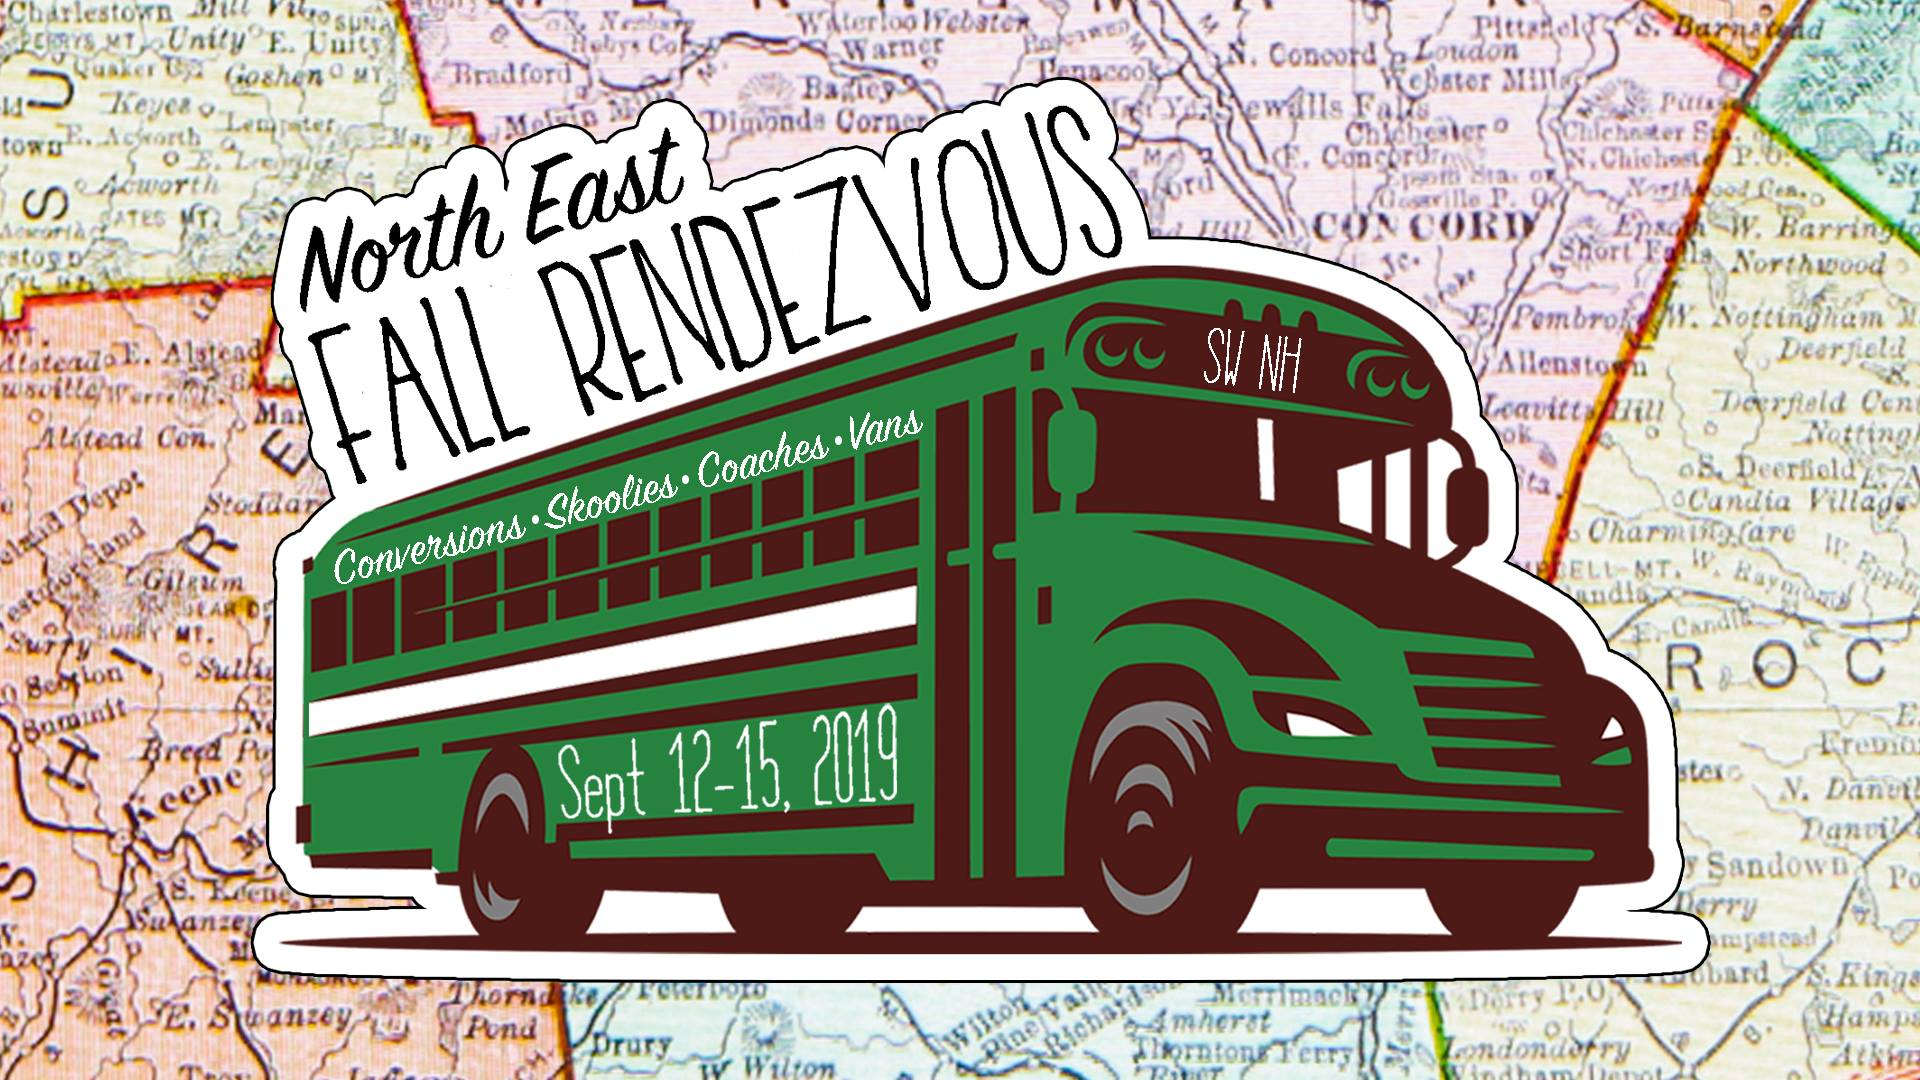 North East Fall Rendezvous: Skoolie & Conversion Gathering